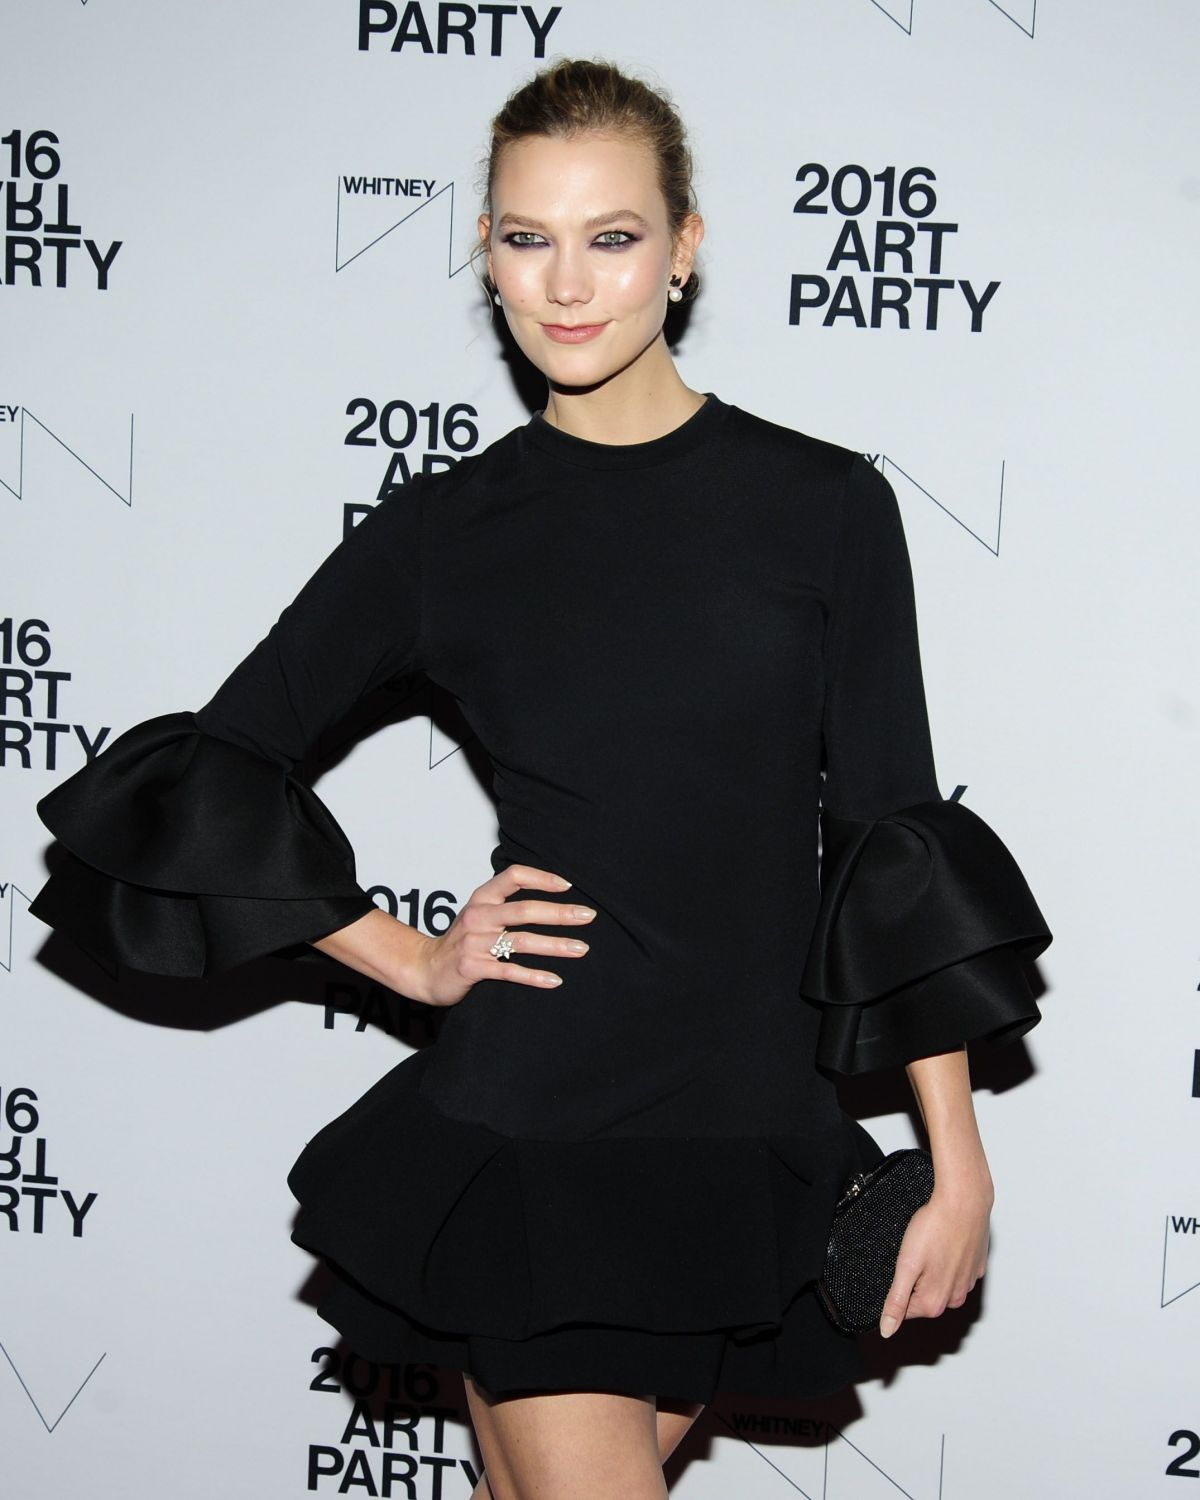 KARLIE KLOSS at Whitney Annual Art Party in New York 11/15/2016